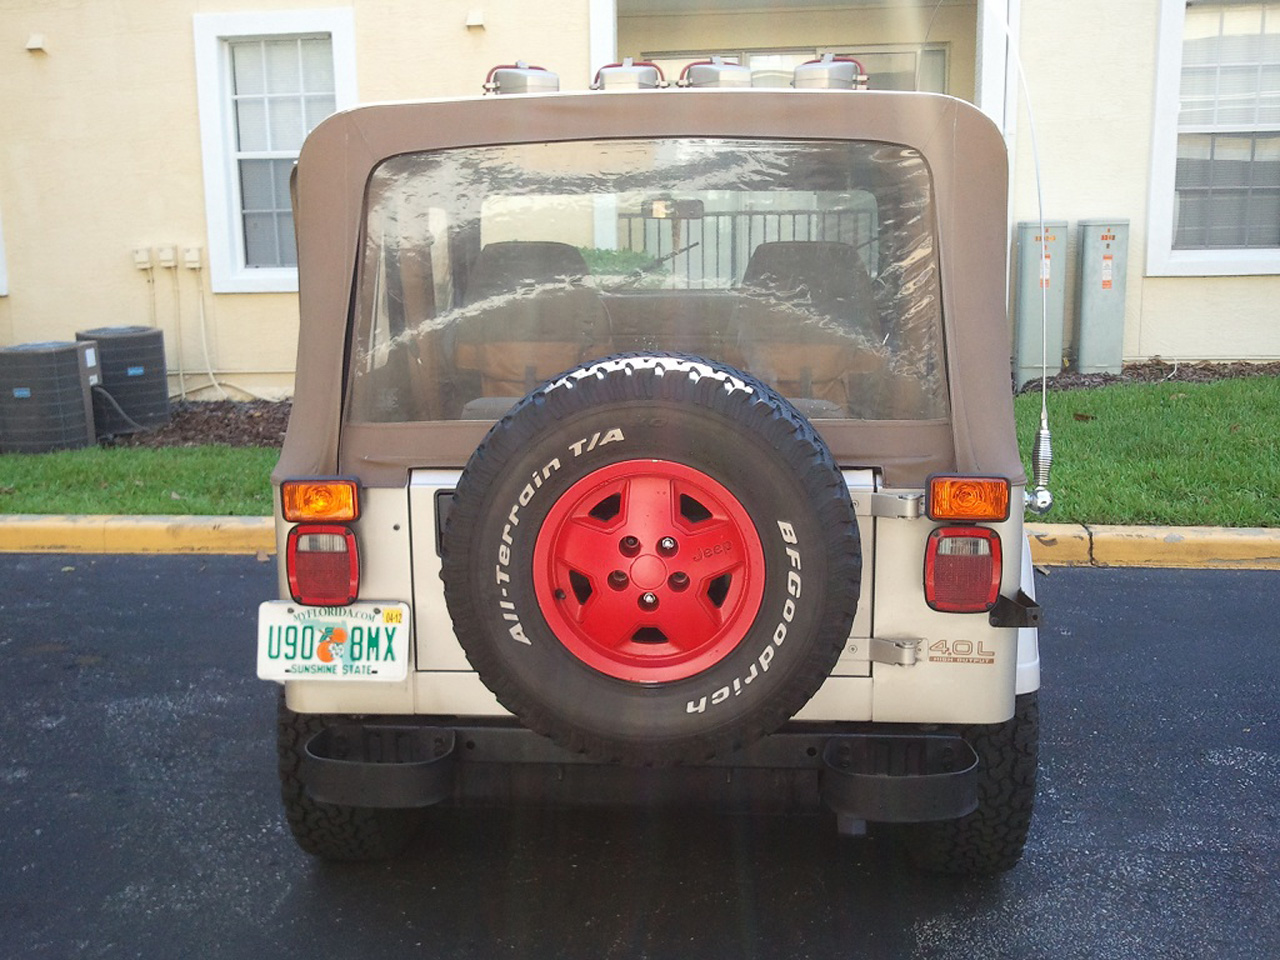 Jurassic Park Jeep For Sale >> eBay Find of the Day: Jeep Wrangler Jurassic Park edition - Autoblog